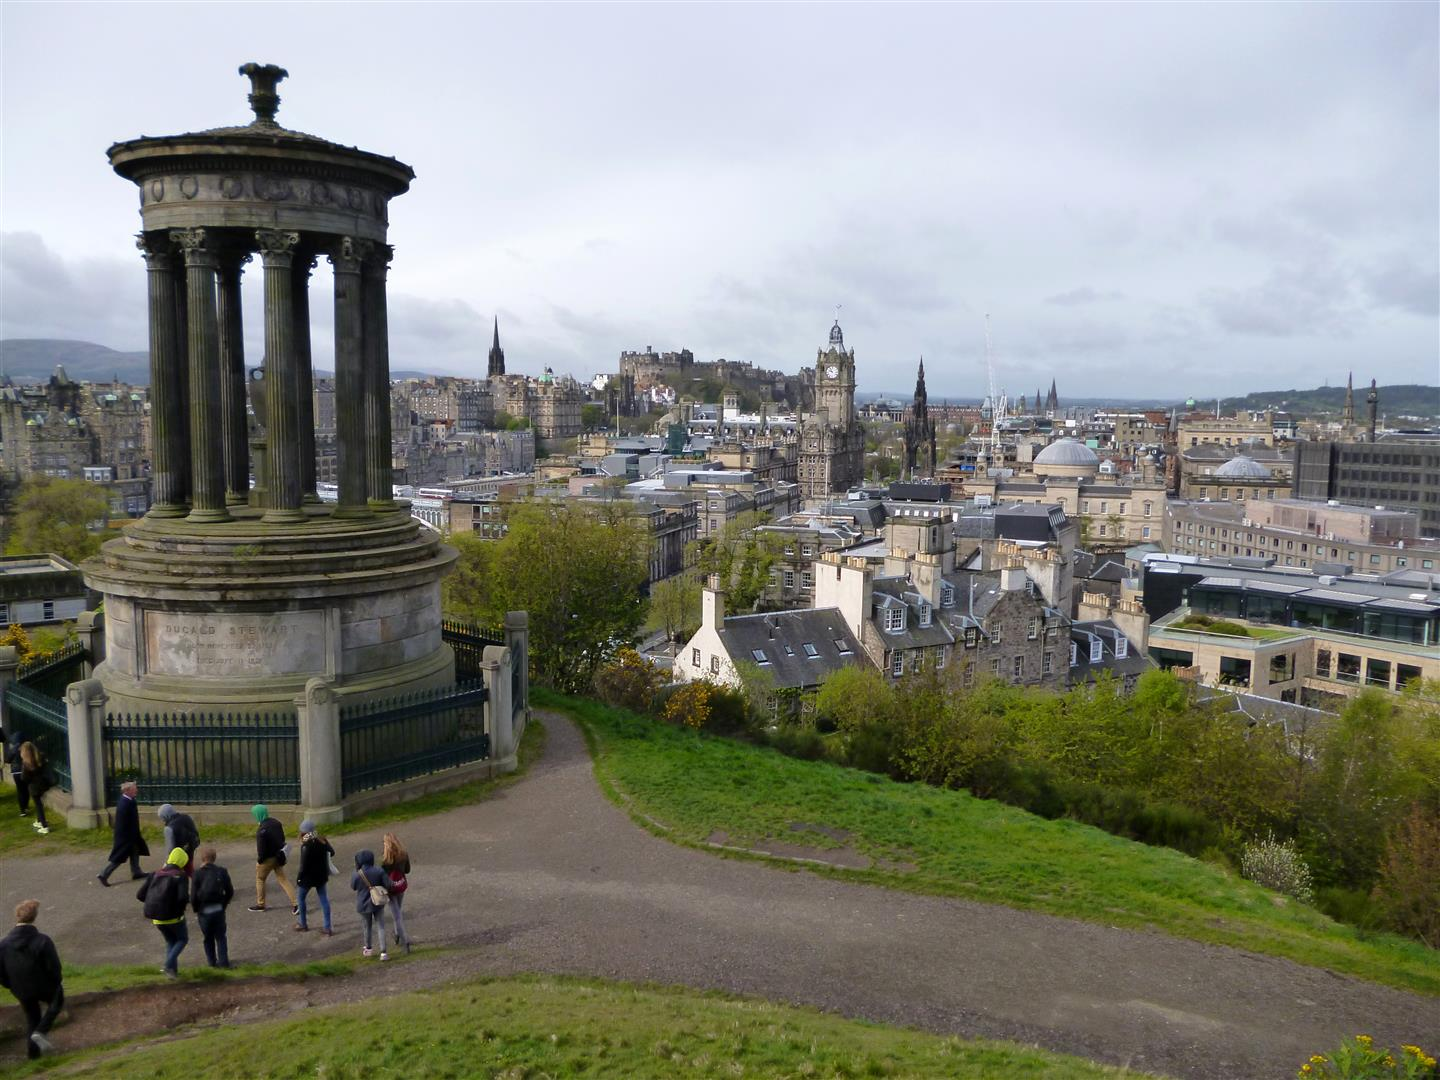 EdinburghAltstadt